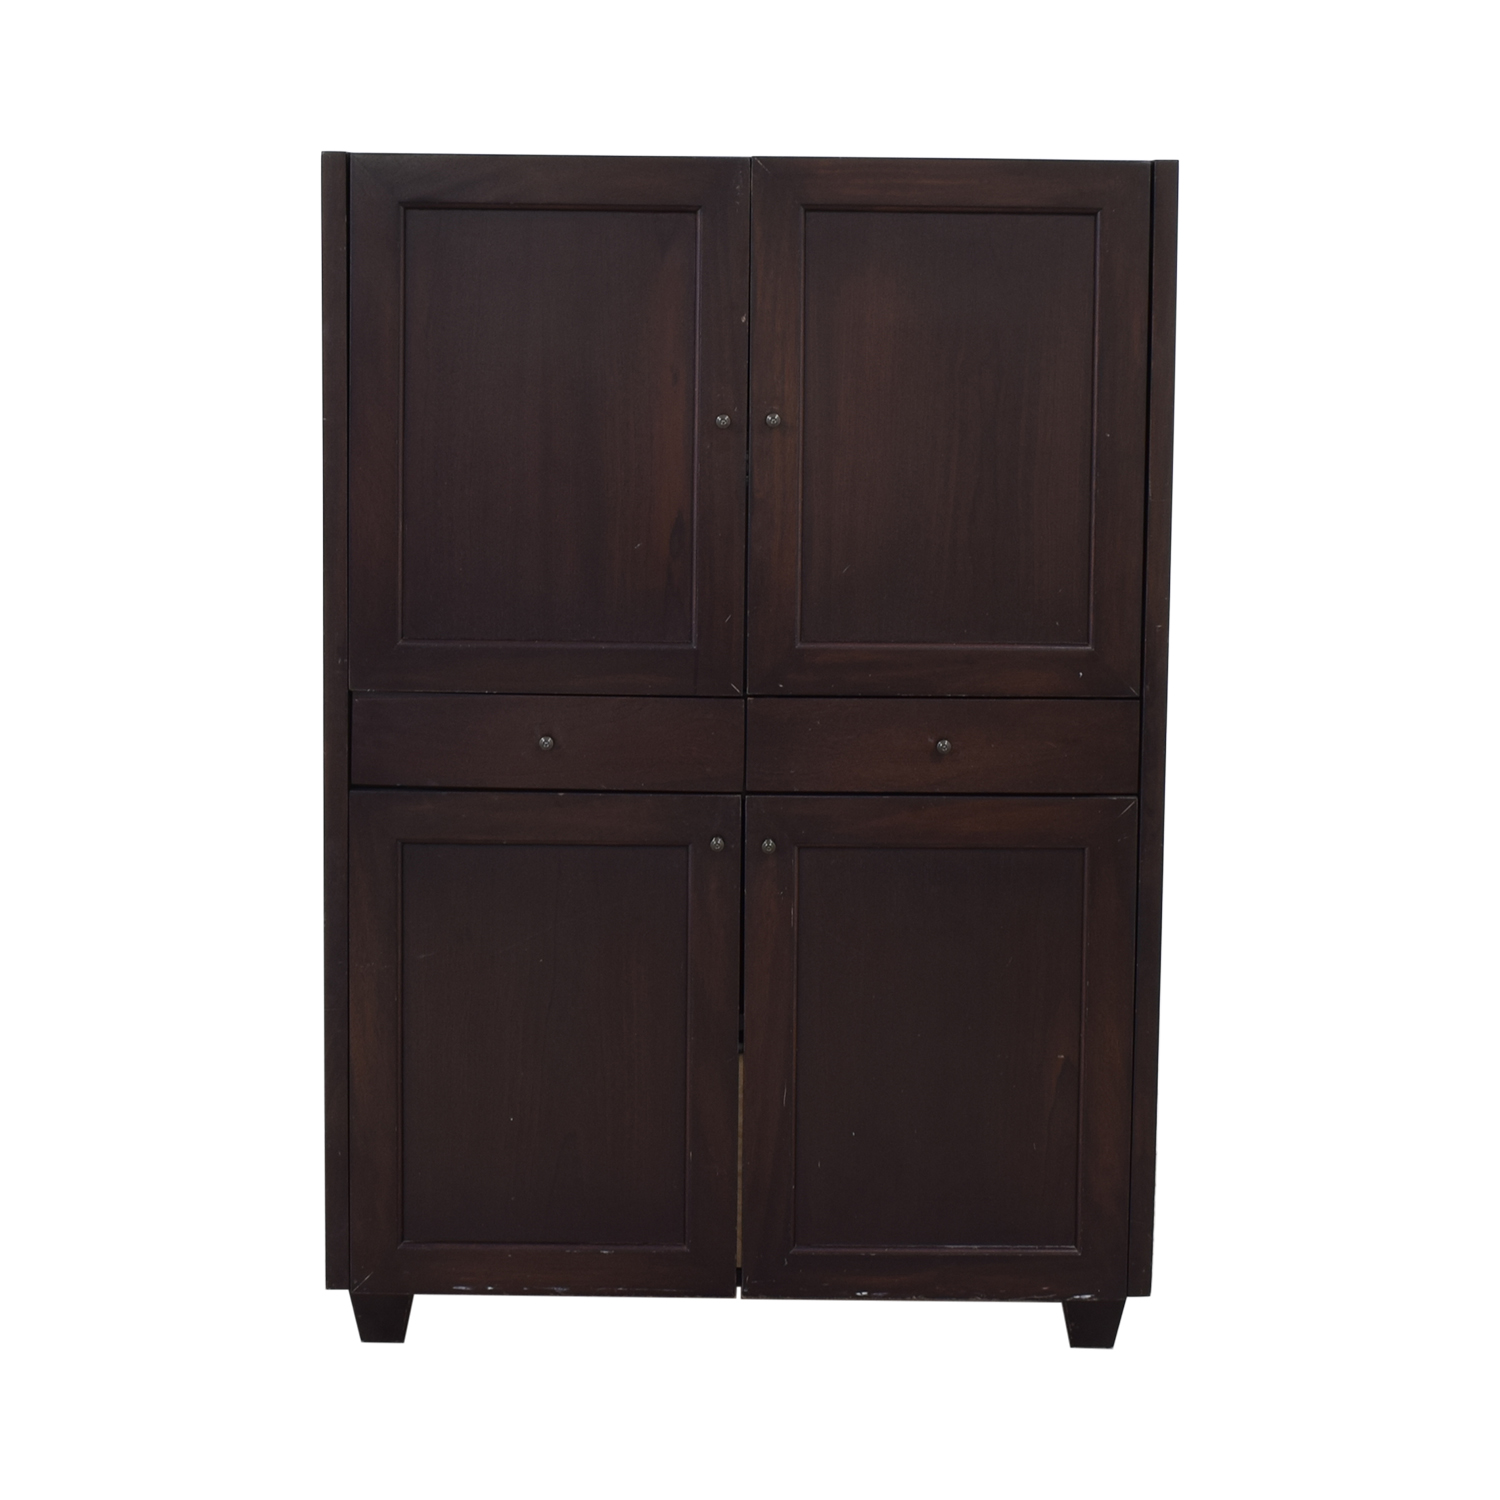 Stationary Cabinet with Drawers nyc